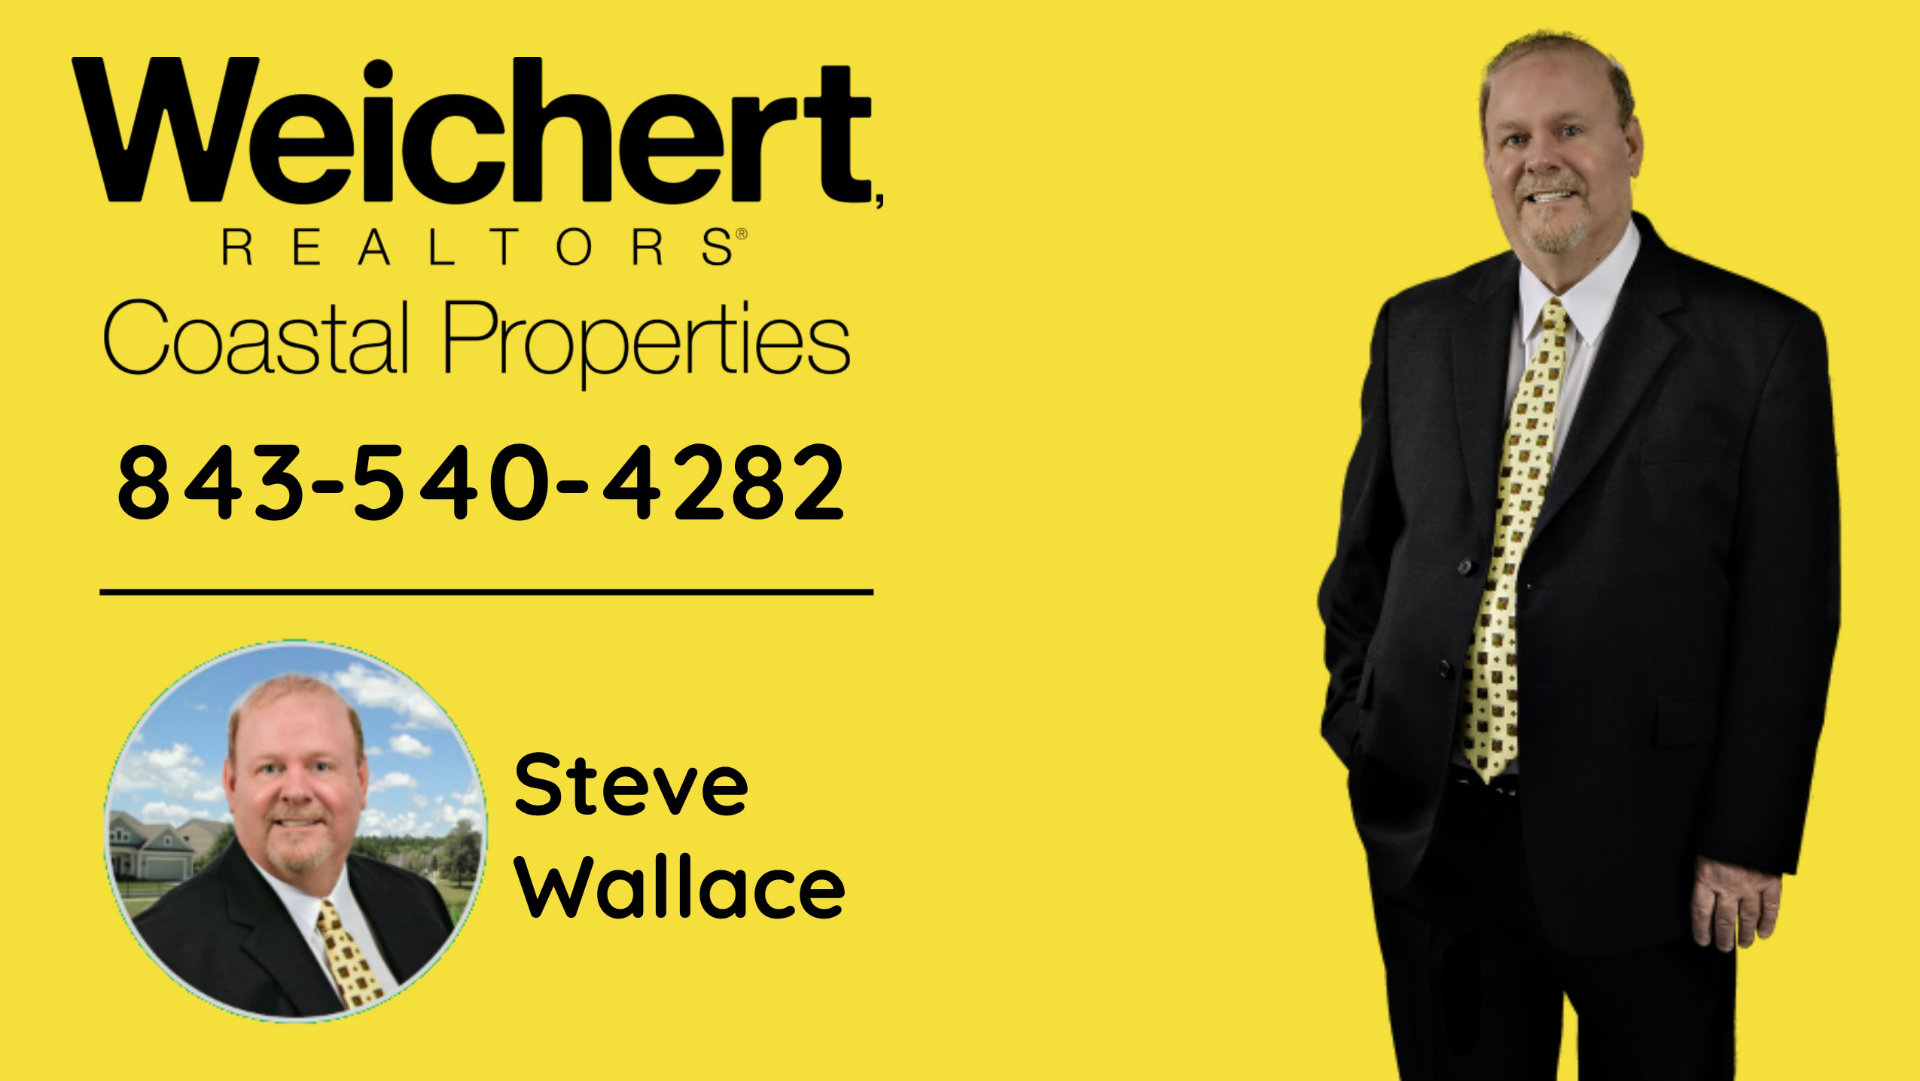 List Your Bluffton SC Home for Sale, Sell Your House, Steve Wallace, Weichert, Realtors